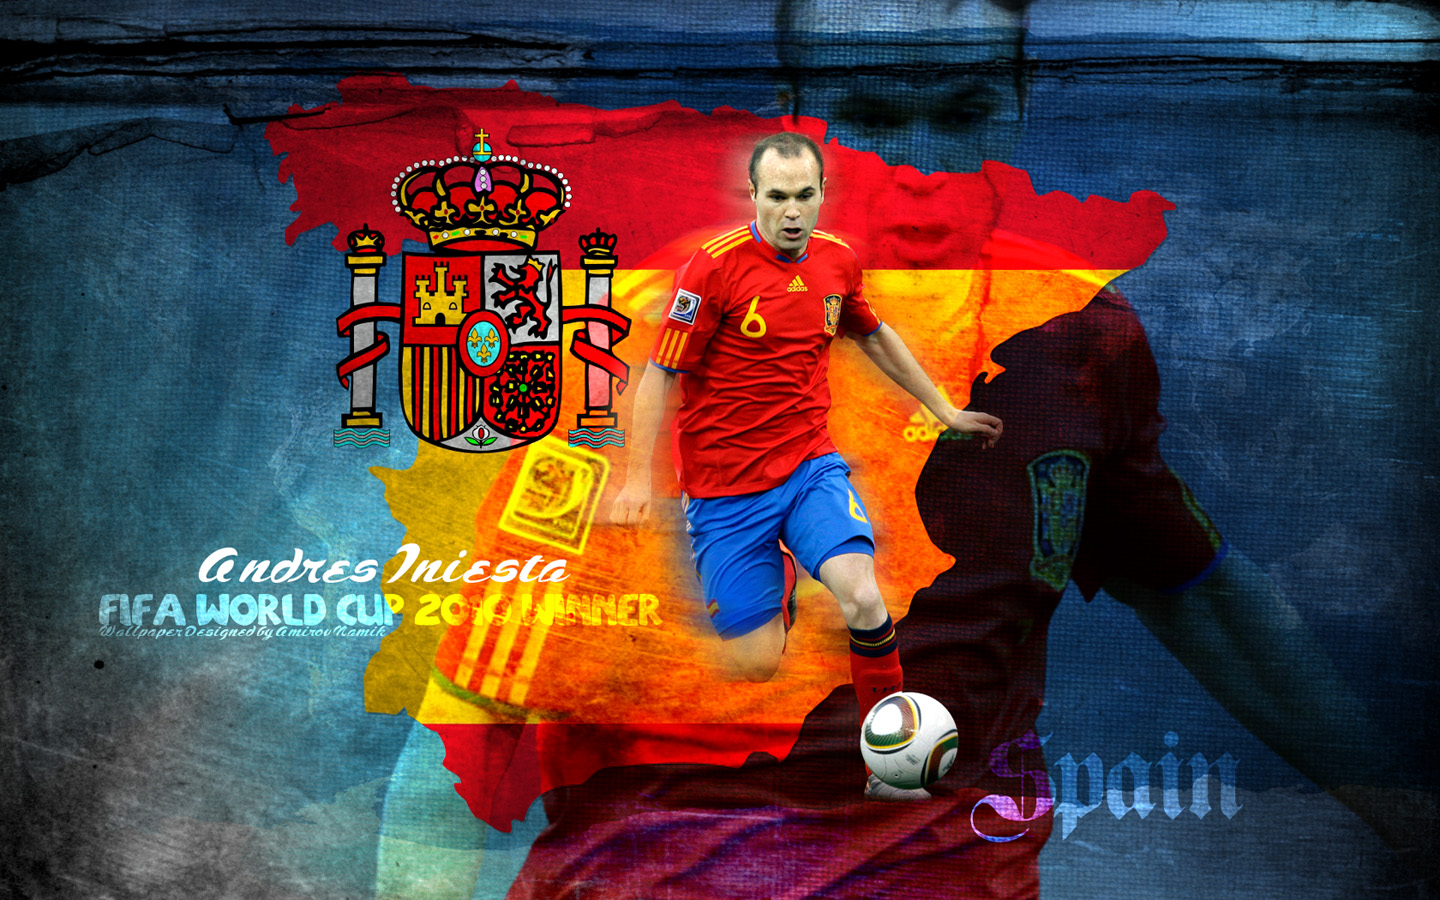 Stadion Piala Dunia Tops Wallpapers Bola net Download Wallpaper andres iniesta spain Dikirim oleh 1440x900